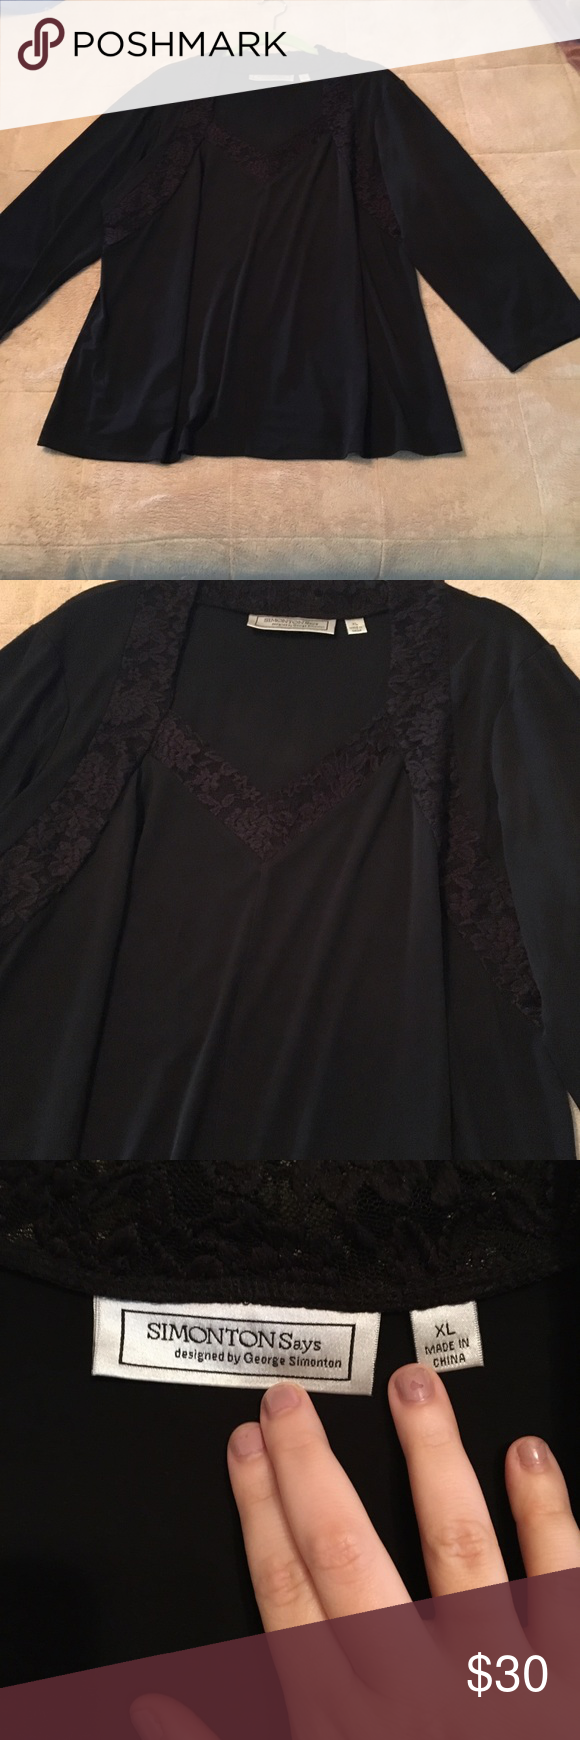 Simonton Says black lace detail top George Simonton black top has lace outlining detail around the neckline. Only worn once, excellent condition! George Simonton Tops